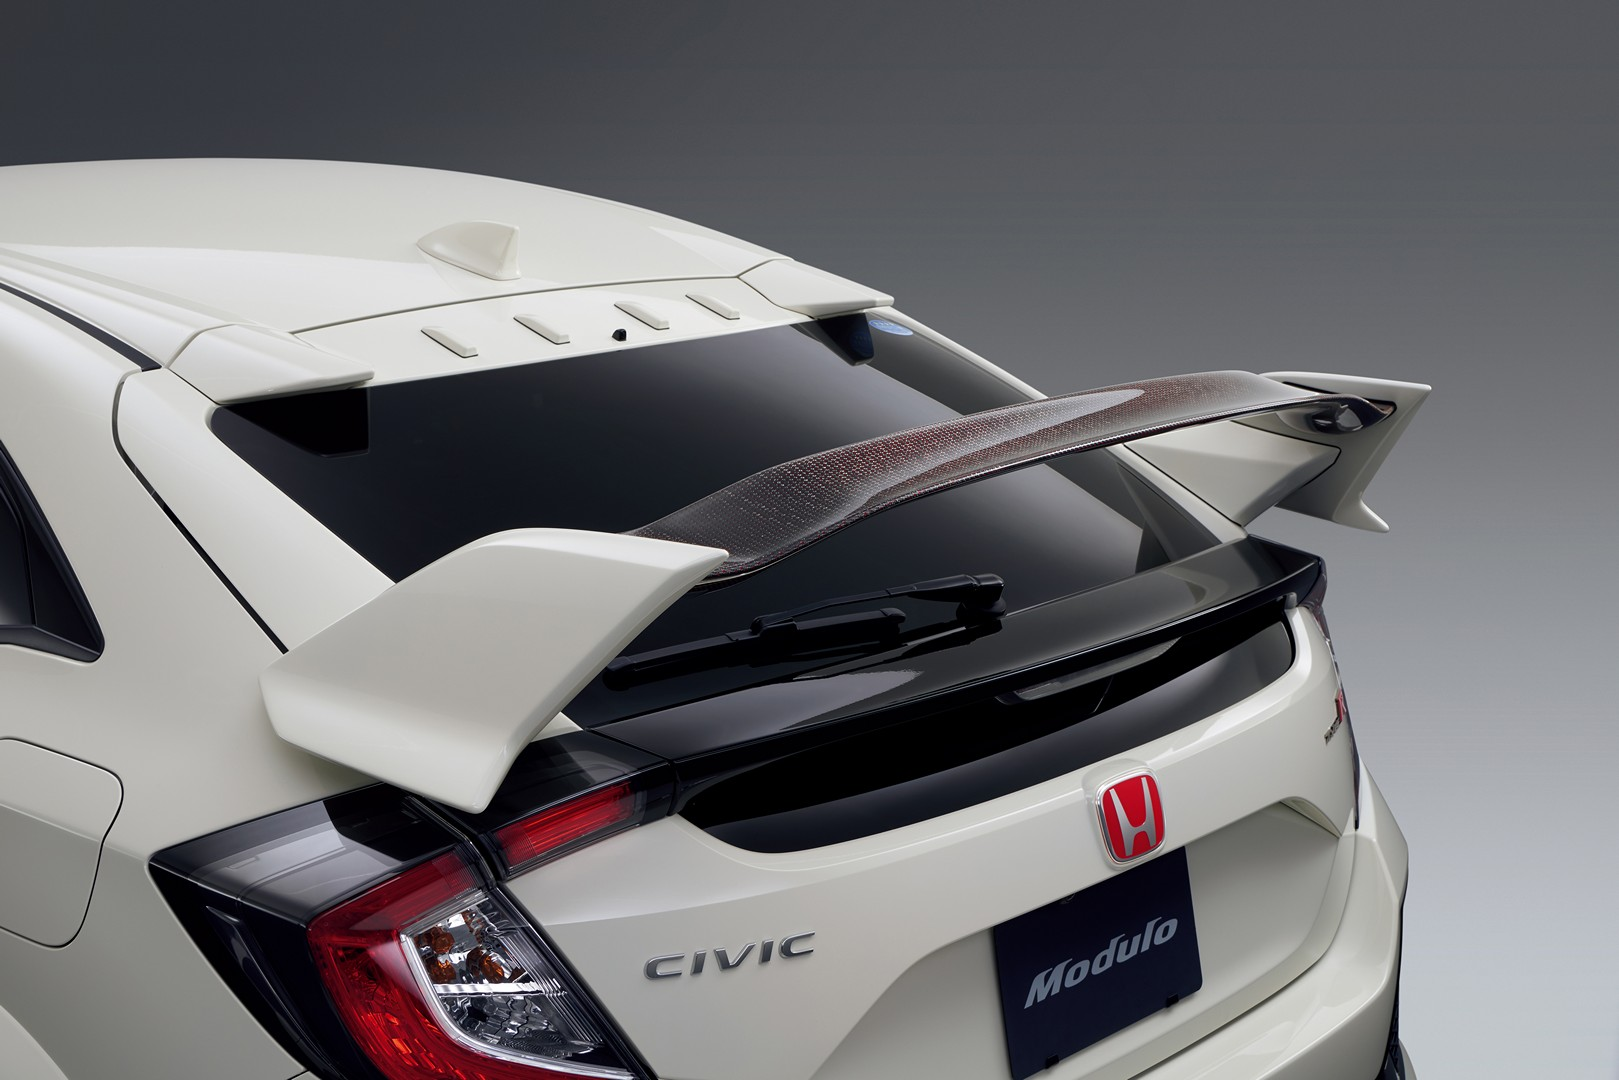 Honda Civic Type R Gets Real Real Carbon Wing Accessory in ...